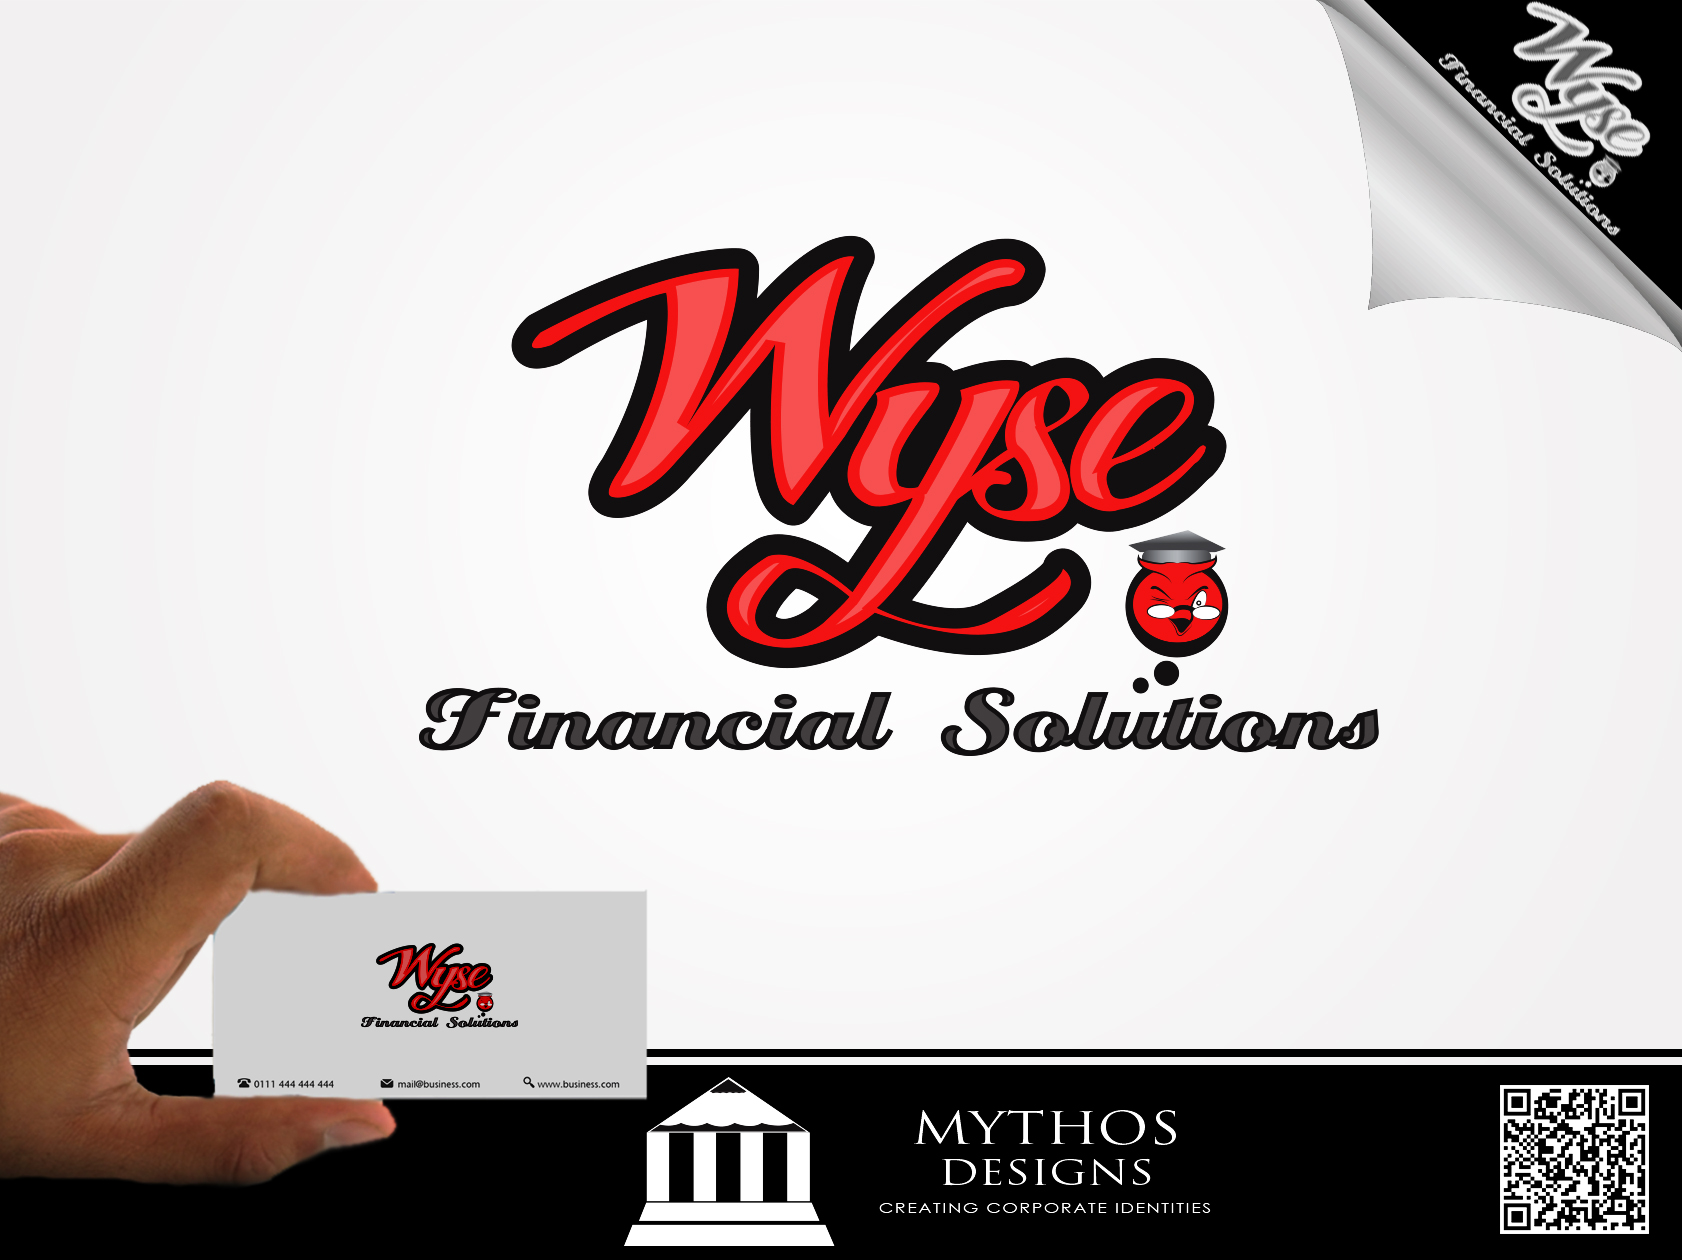 Logo Design by Mythos Designs - Entry No. 87 in the Logo Design Contest Fun Logo Design for Wyse Financial Solutions.